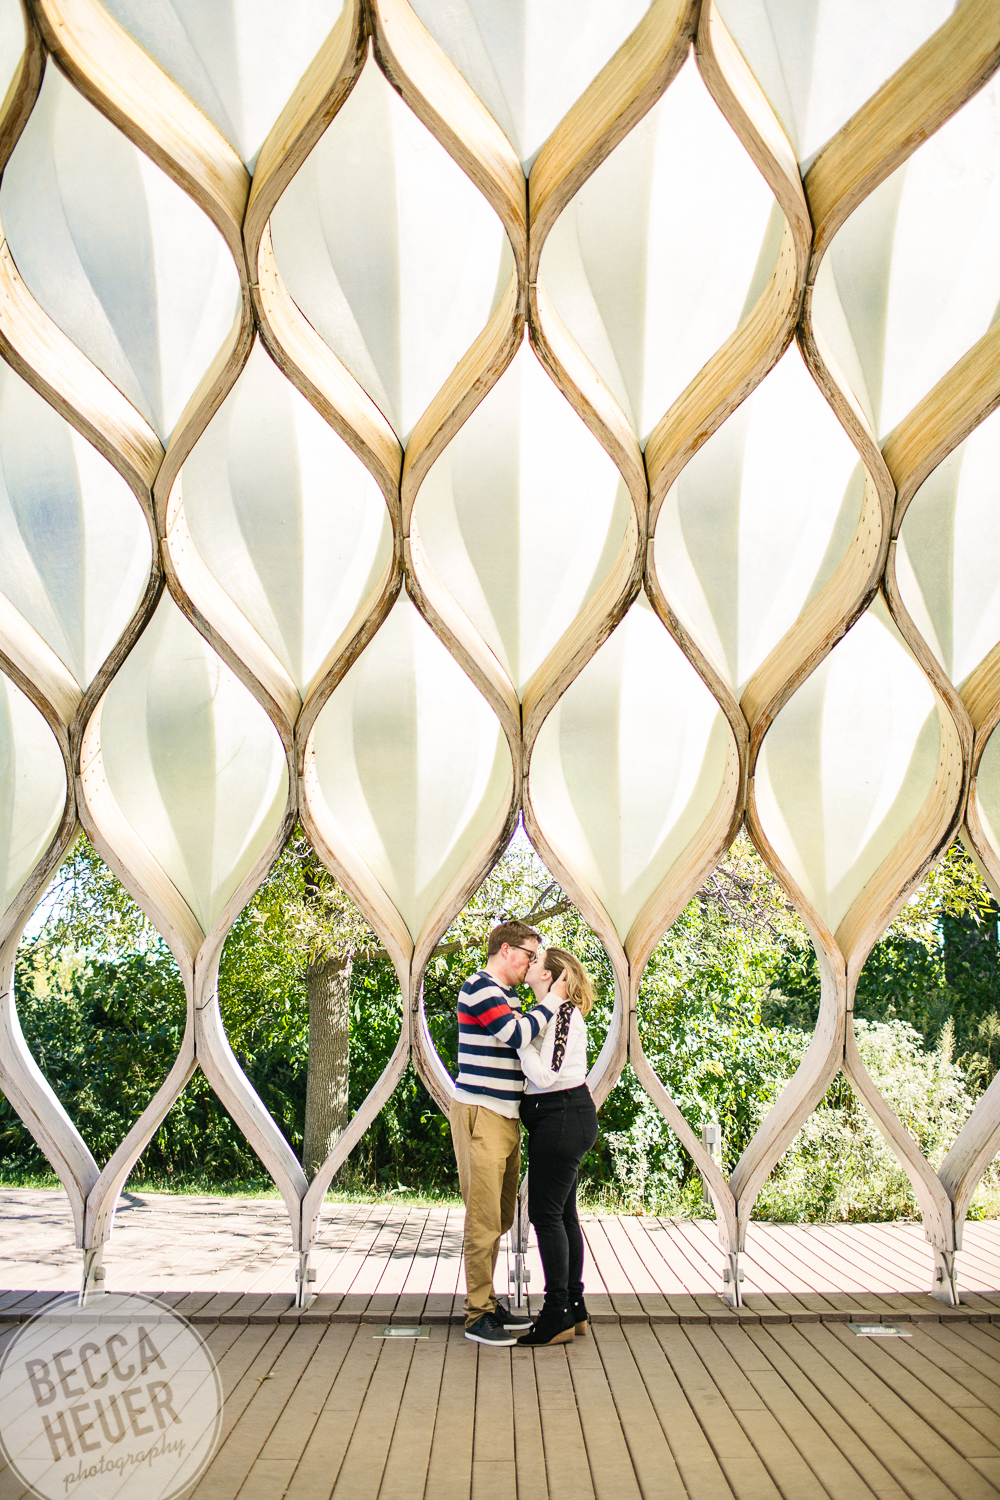 LincolnPark Proposal_Engagement Photography-039.jpg